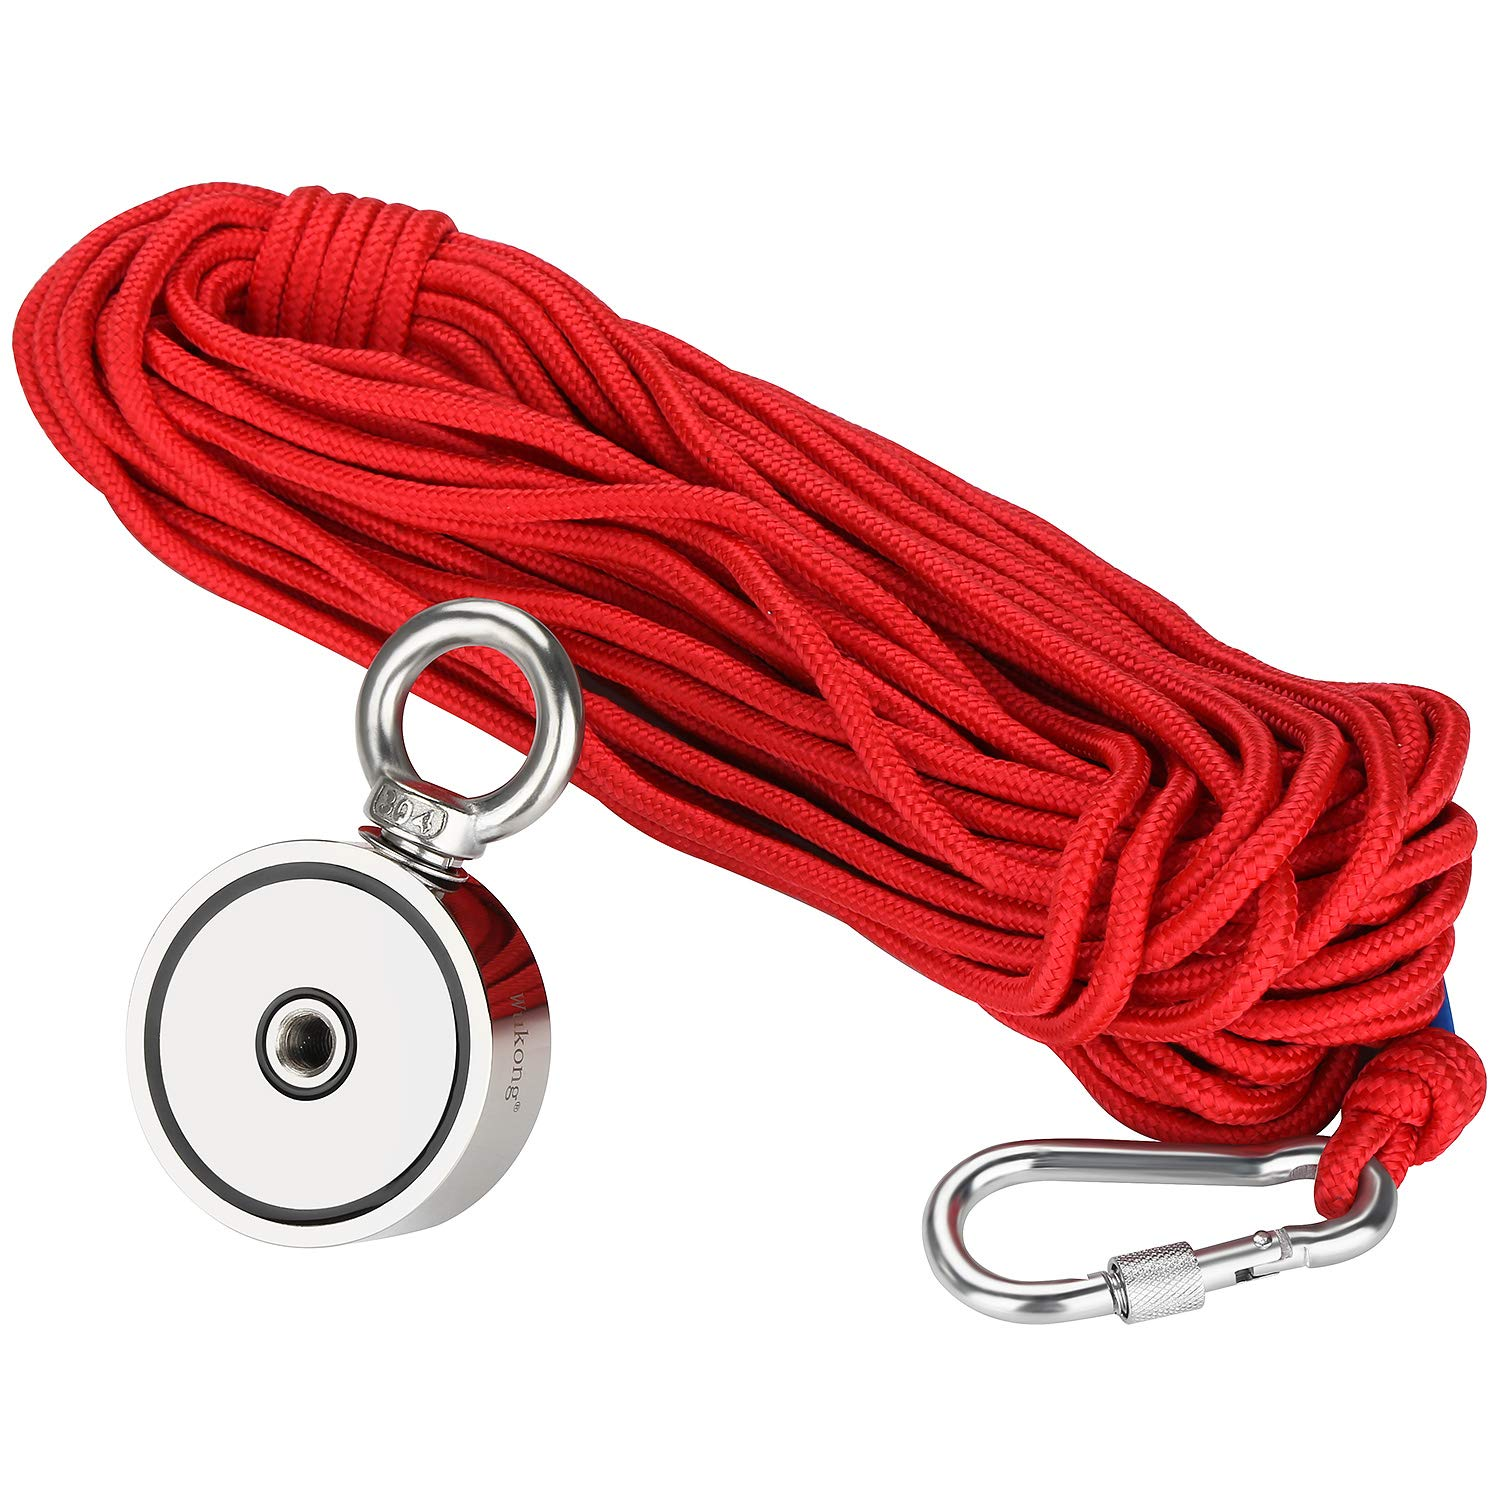 Fishing Magnet with 66ft Rope & Glove, Wukong 760LB Pulling Force Super Strong Neodymium Magnet with Heavy Duty Rope & Carabiner for Magnet Fishing and Retrieving in River - 67mm Diameter by Wukong (Image #3)